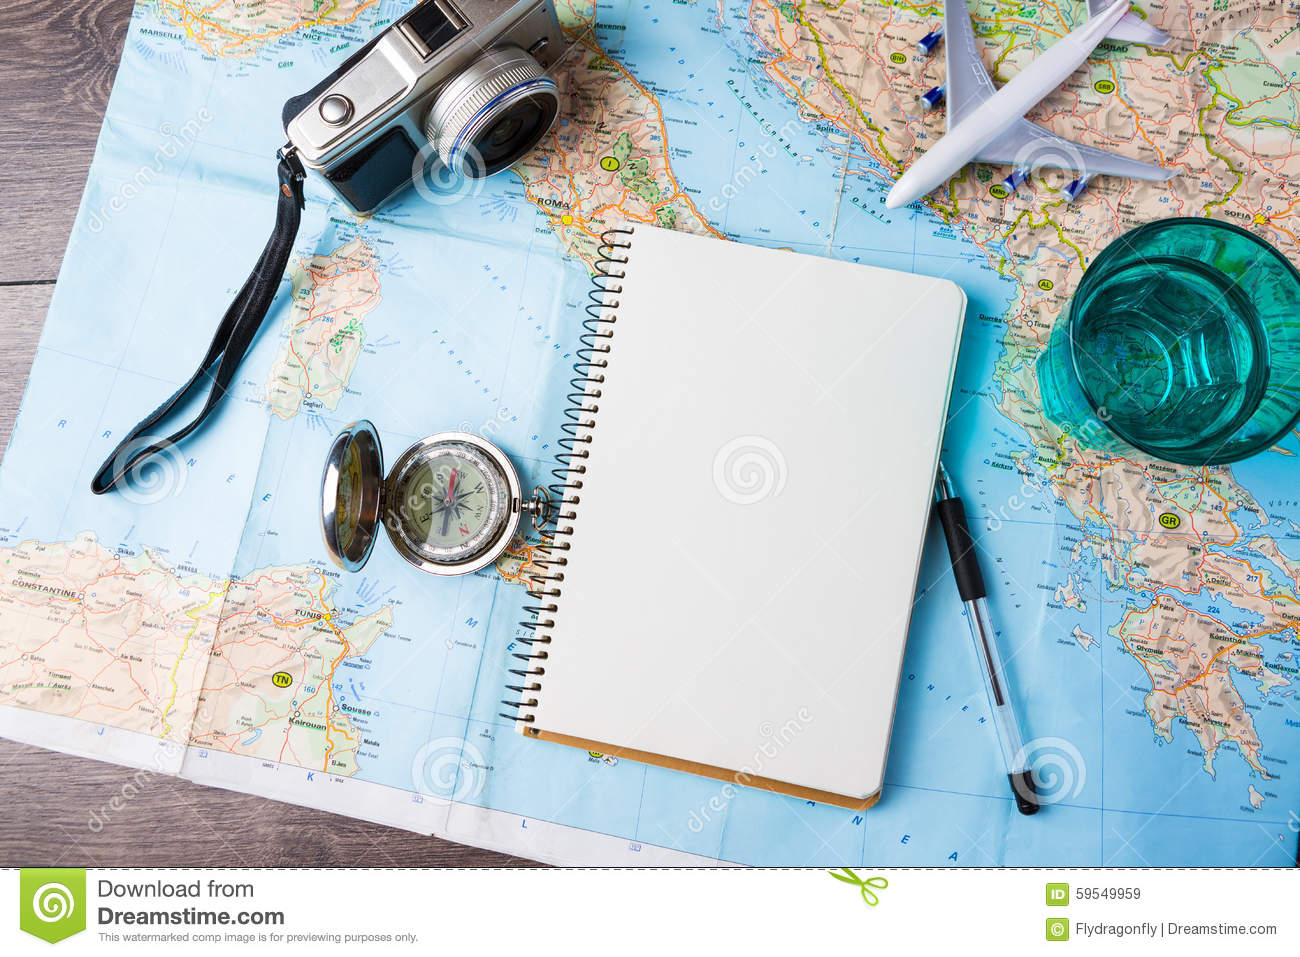 travel-trip-vacation-tourism-mockup-tools-close-up-compass-glass-water-note-pad-pen-toy-airplane-touristic-map-59549959.jpg